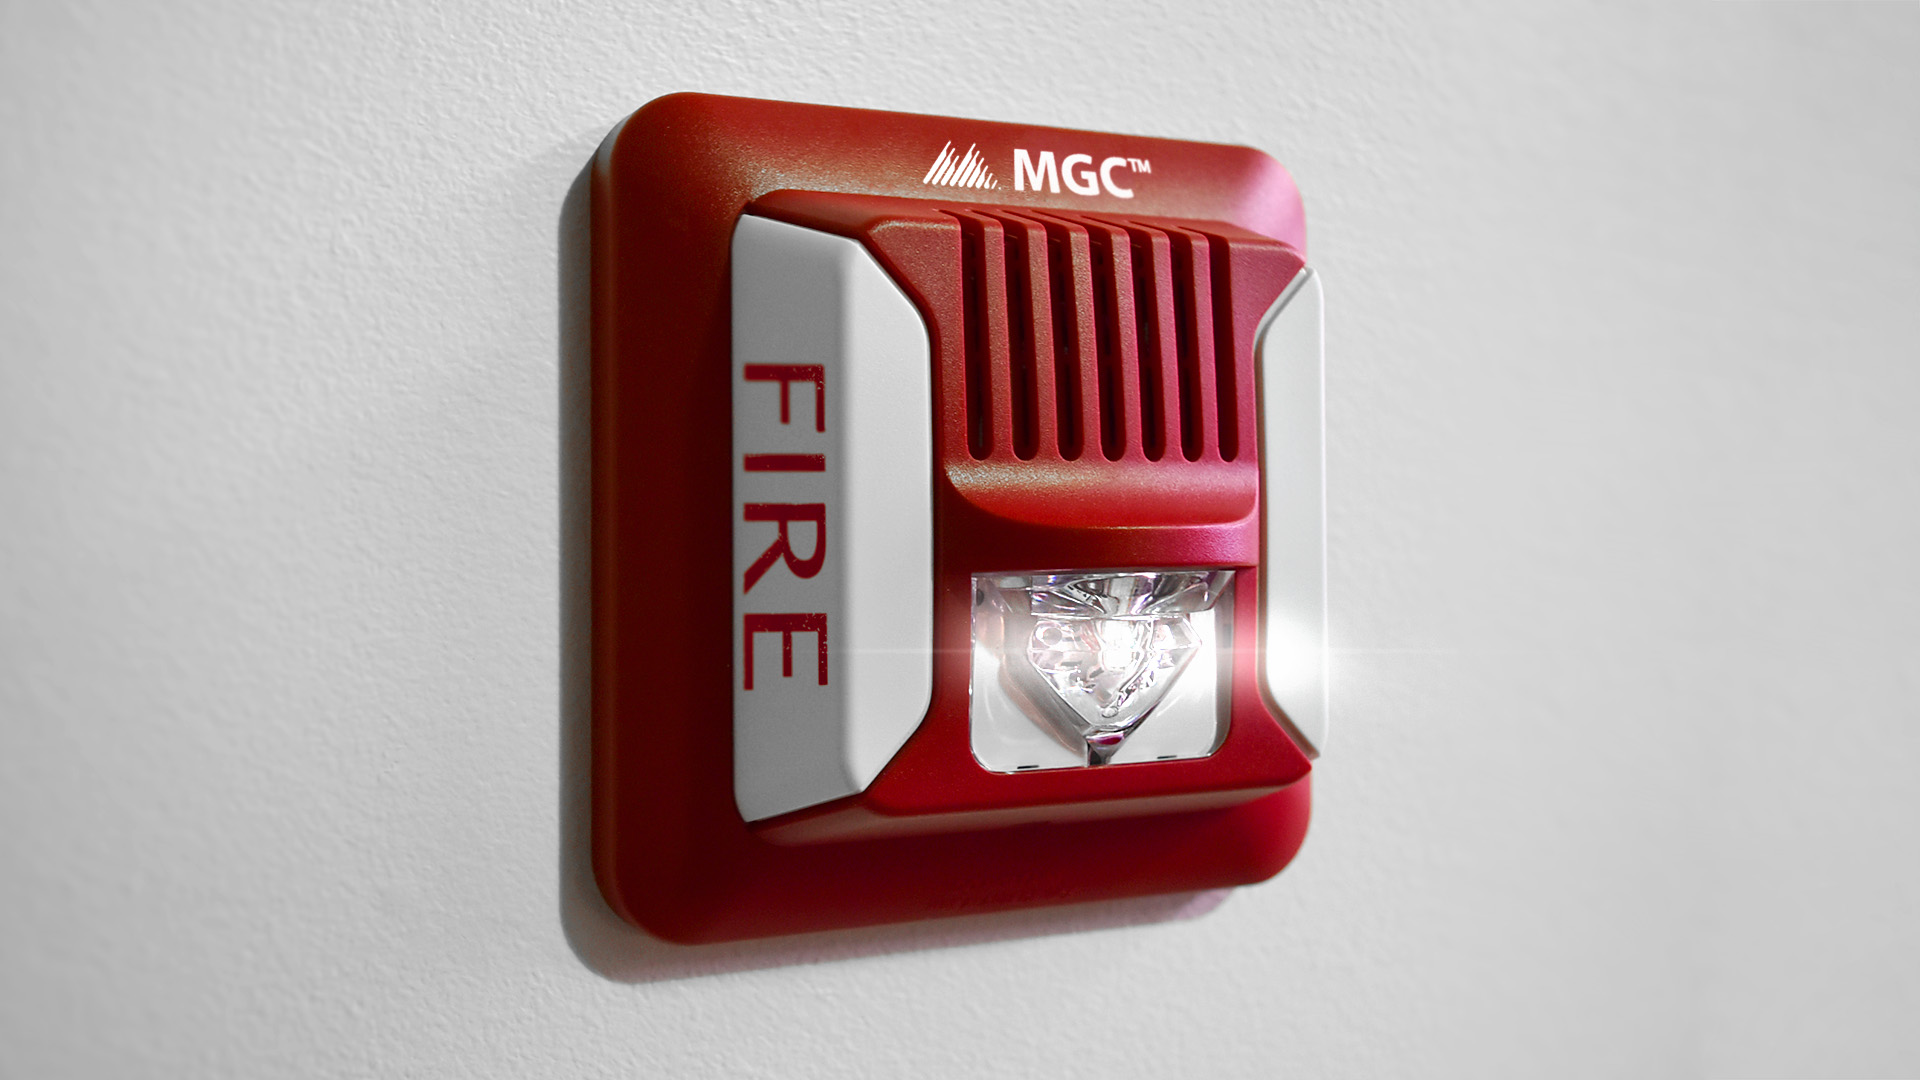 Mircom Fire Alarm - SurfaceID